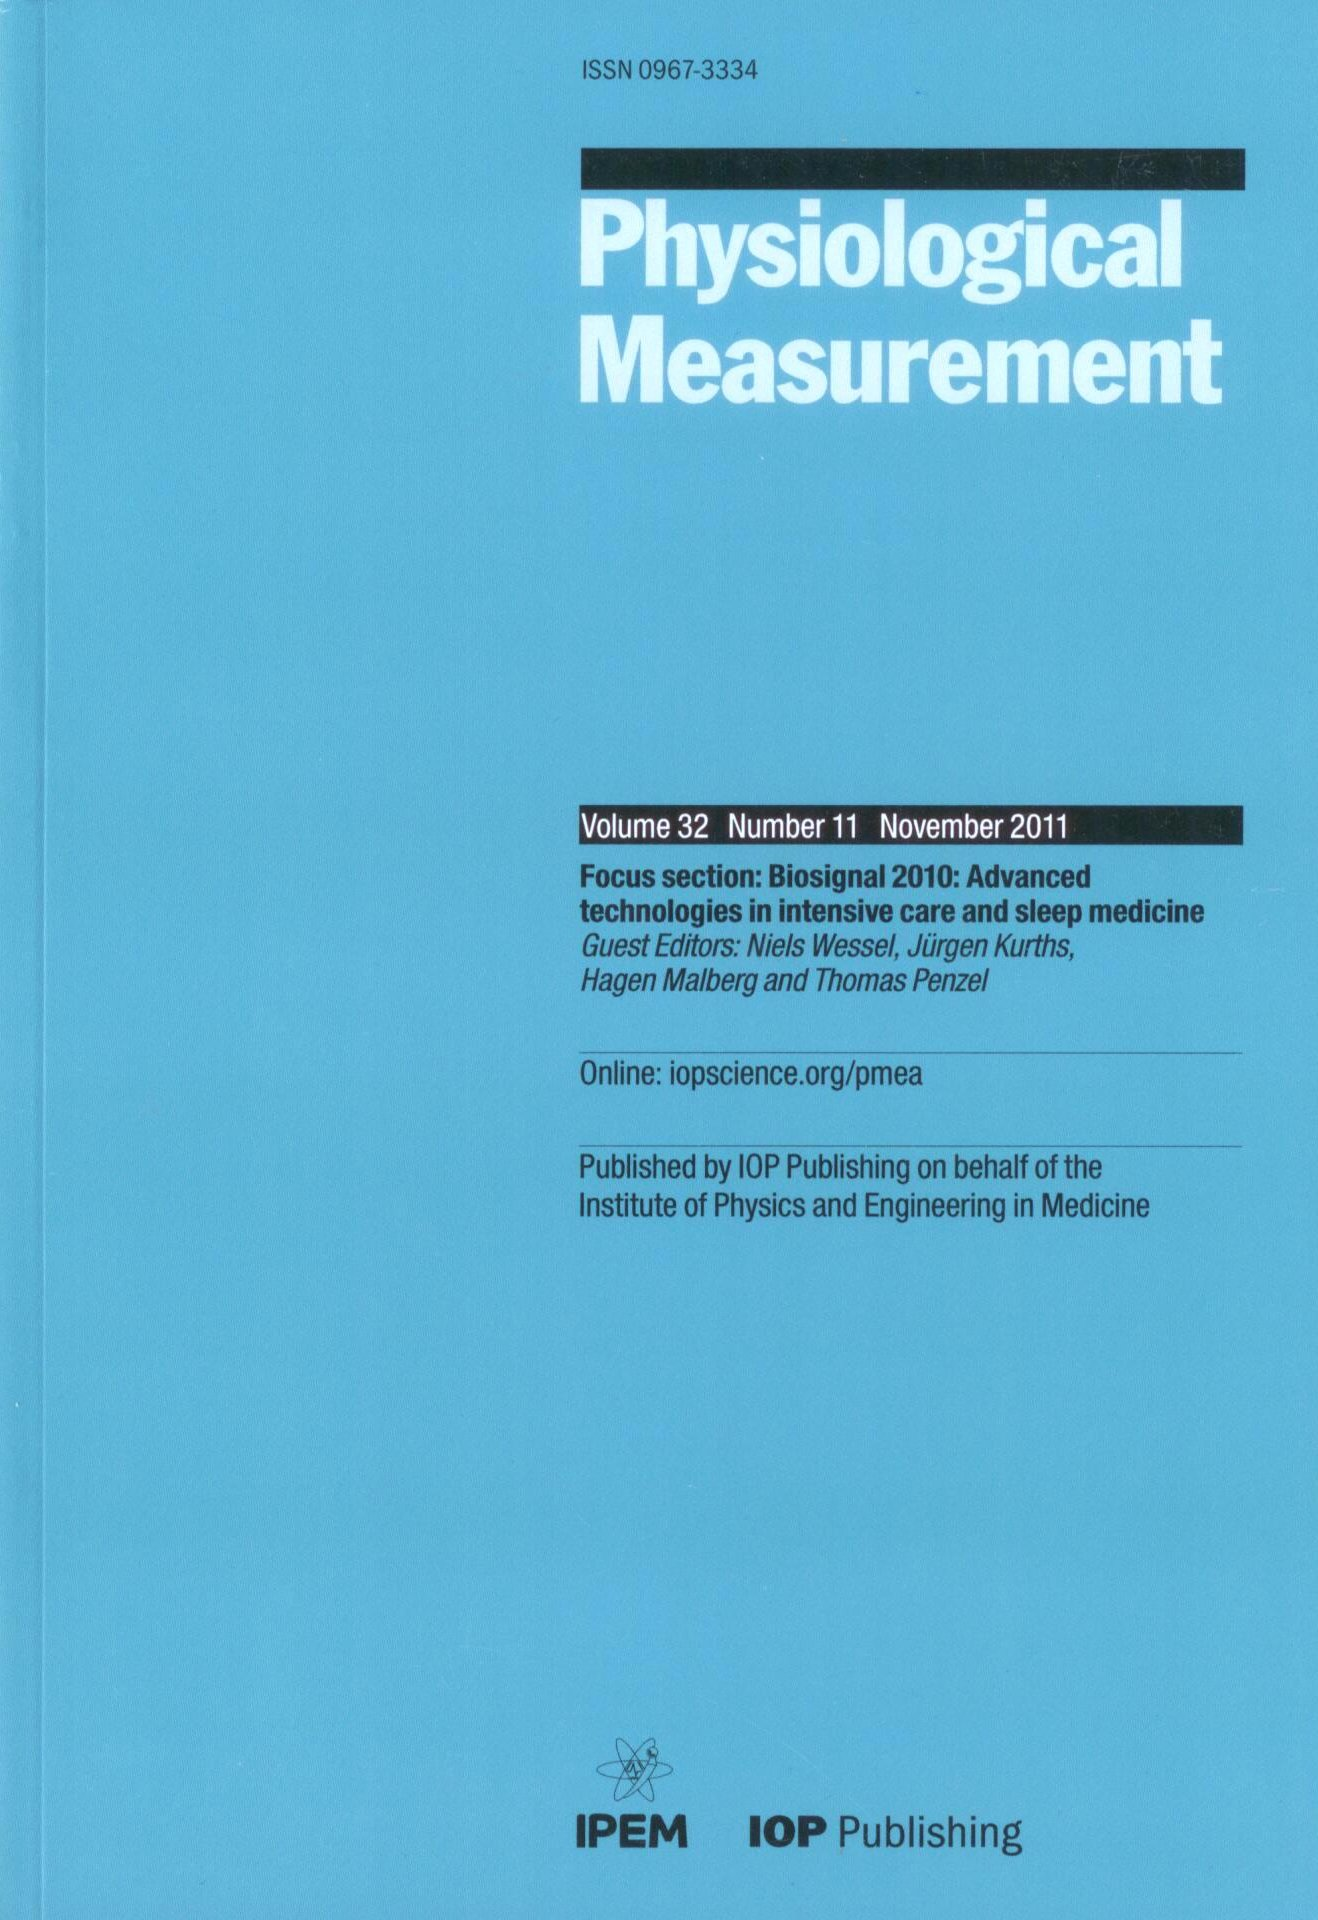 Reprinted with permission from IOPscience, Physiological Measurement